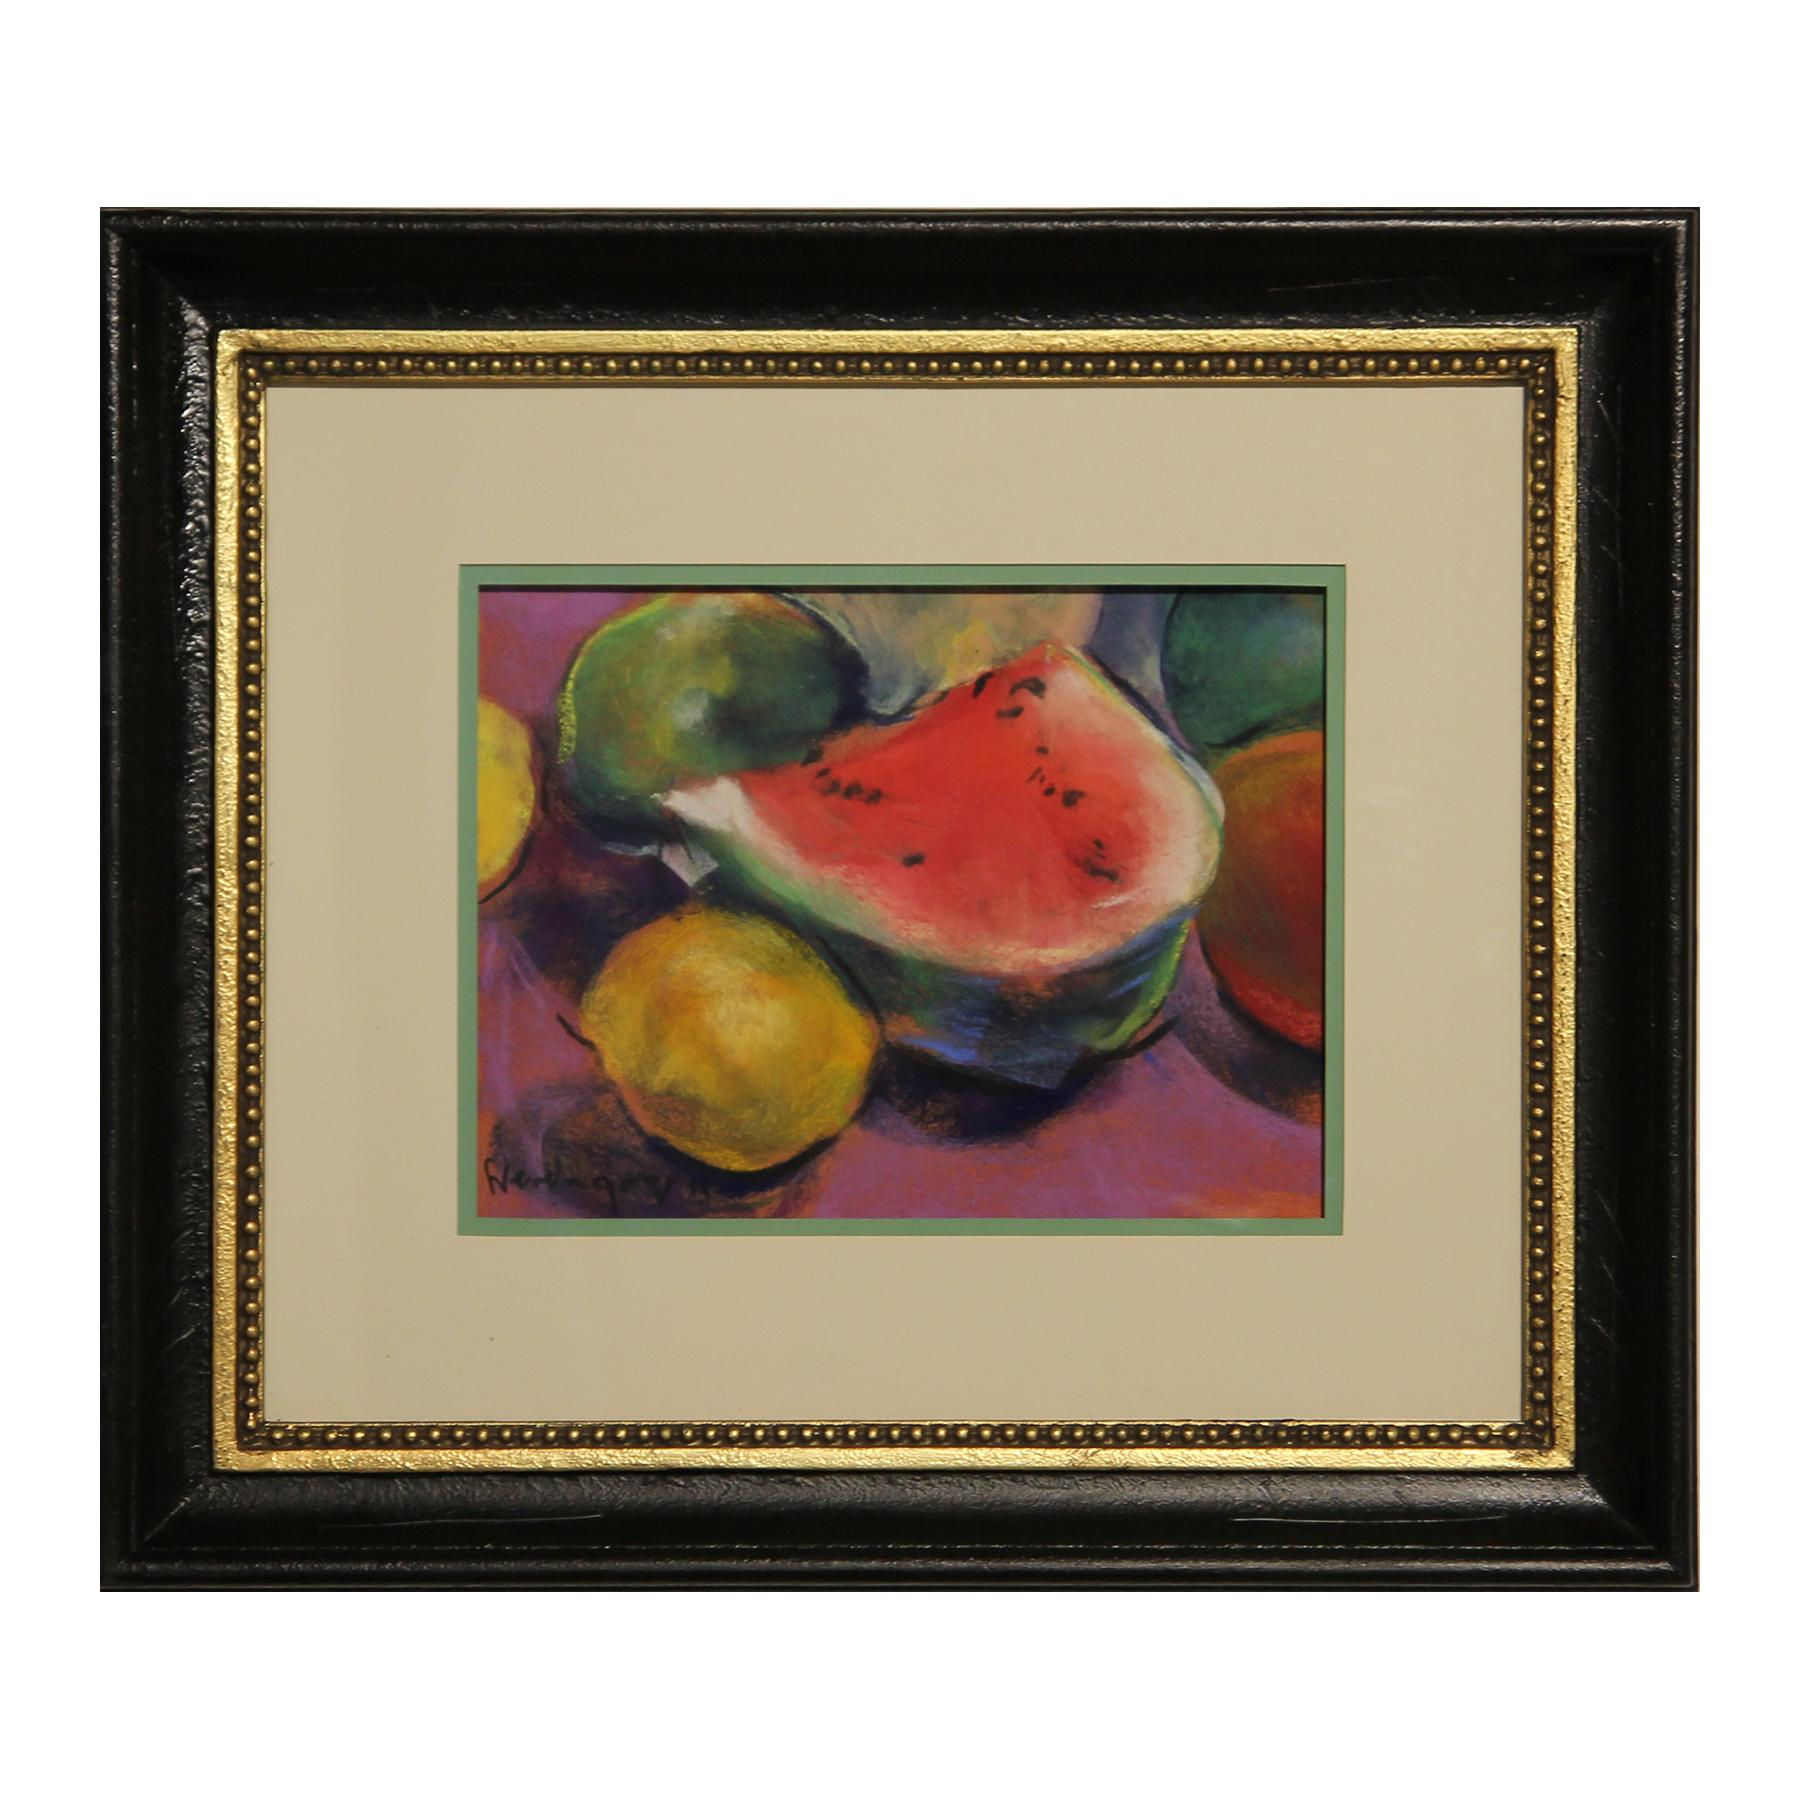 Warm Toned Colorful Realistic Watermelon and Lemon Still Life Fruit Drawing